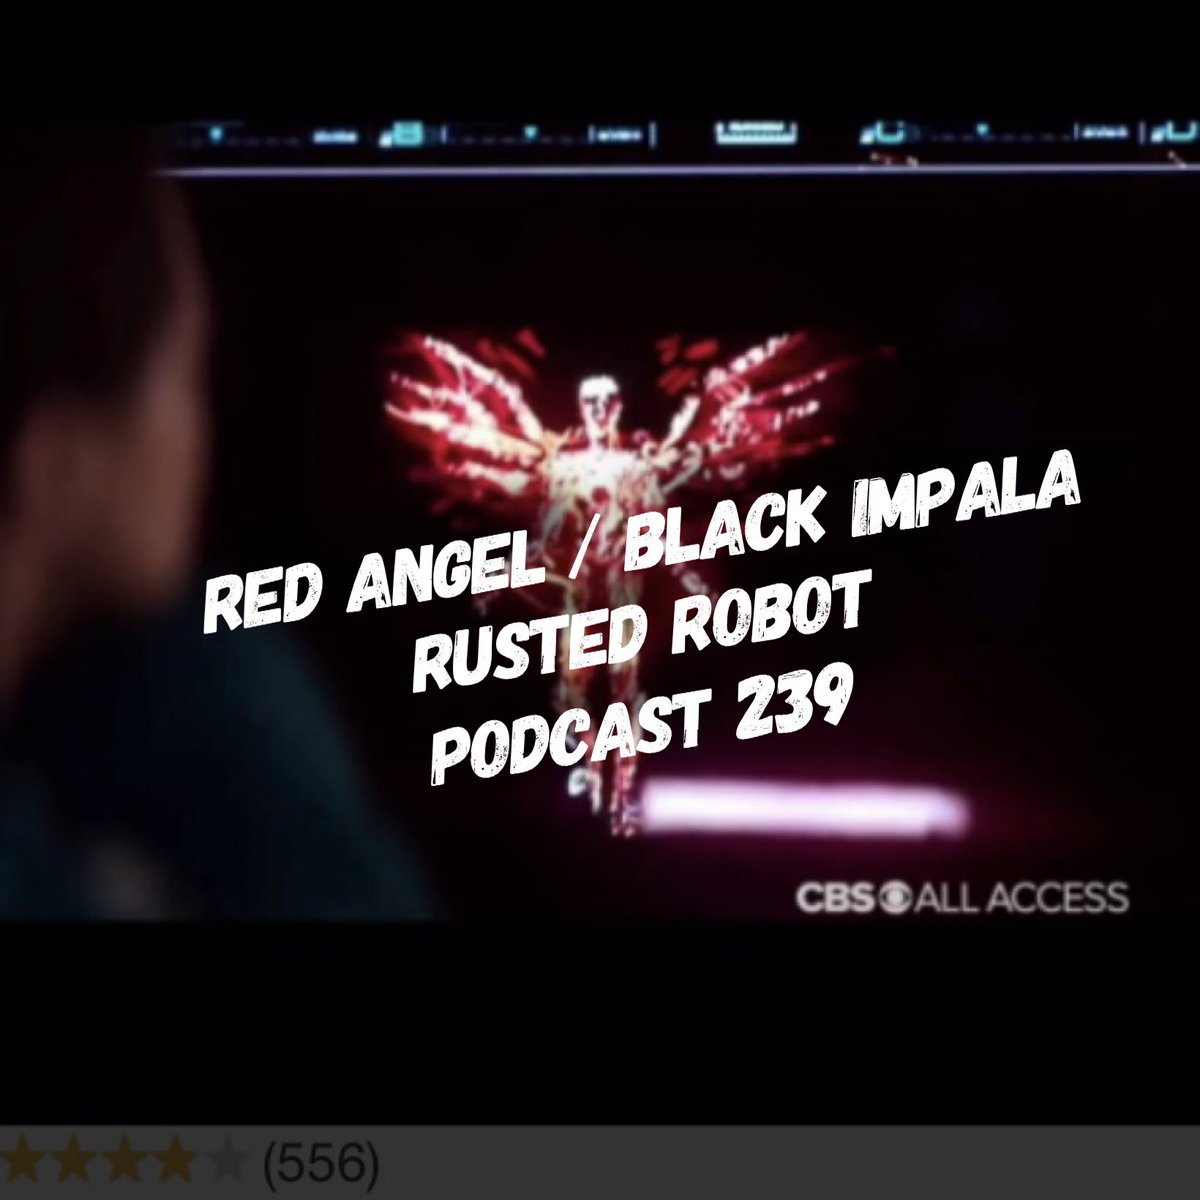 Red Angel / Black Impala - RUSTED ROBOT PODCAST 239 https://therustedrobot.podbean.com/mobile/e/red-angel-black-impala-239/#.XJfSUd3t5Qk.twitter … #StarTrekDiscovery #SupernaturaI #JohnWick3 #StrangerThingsS3 #disneyfox #Deadpool #OnceUponATimeInHollywood #Movies #Trailer #Podernfamily #Podbean #Podcast #ThePWA